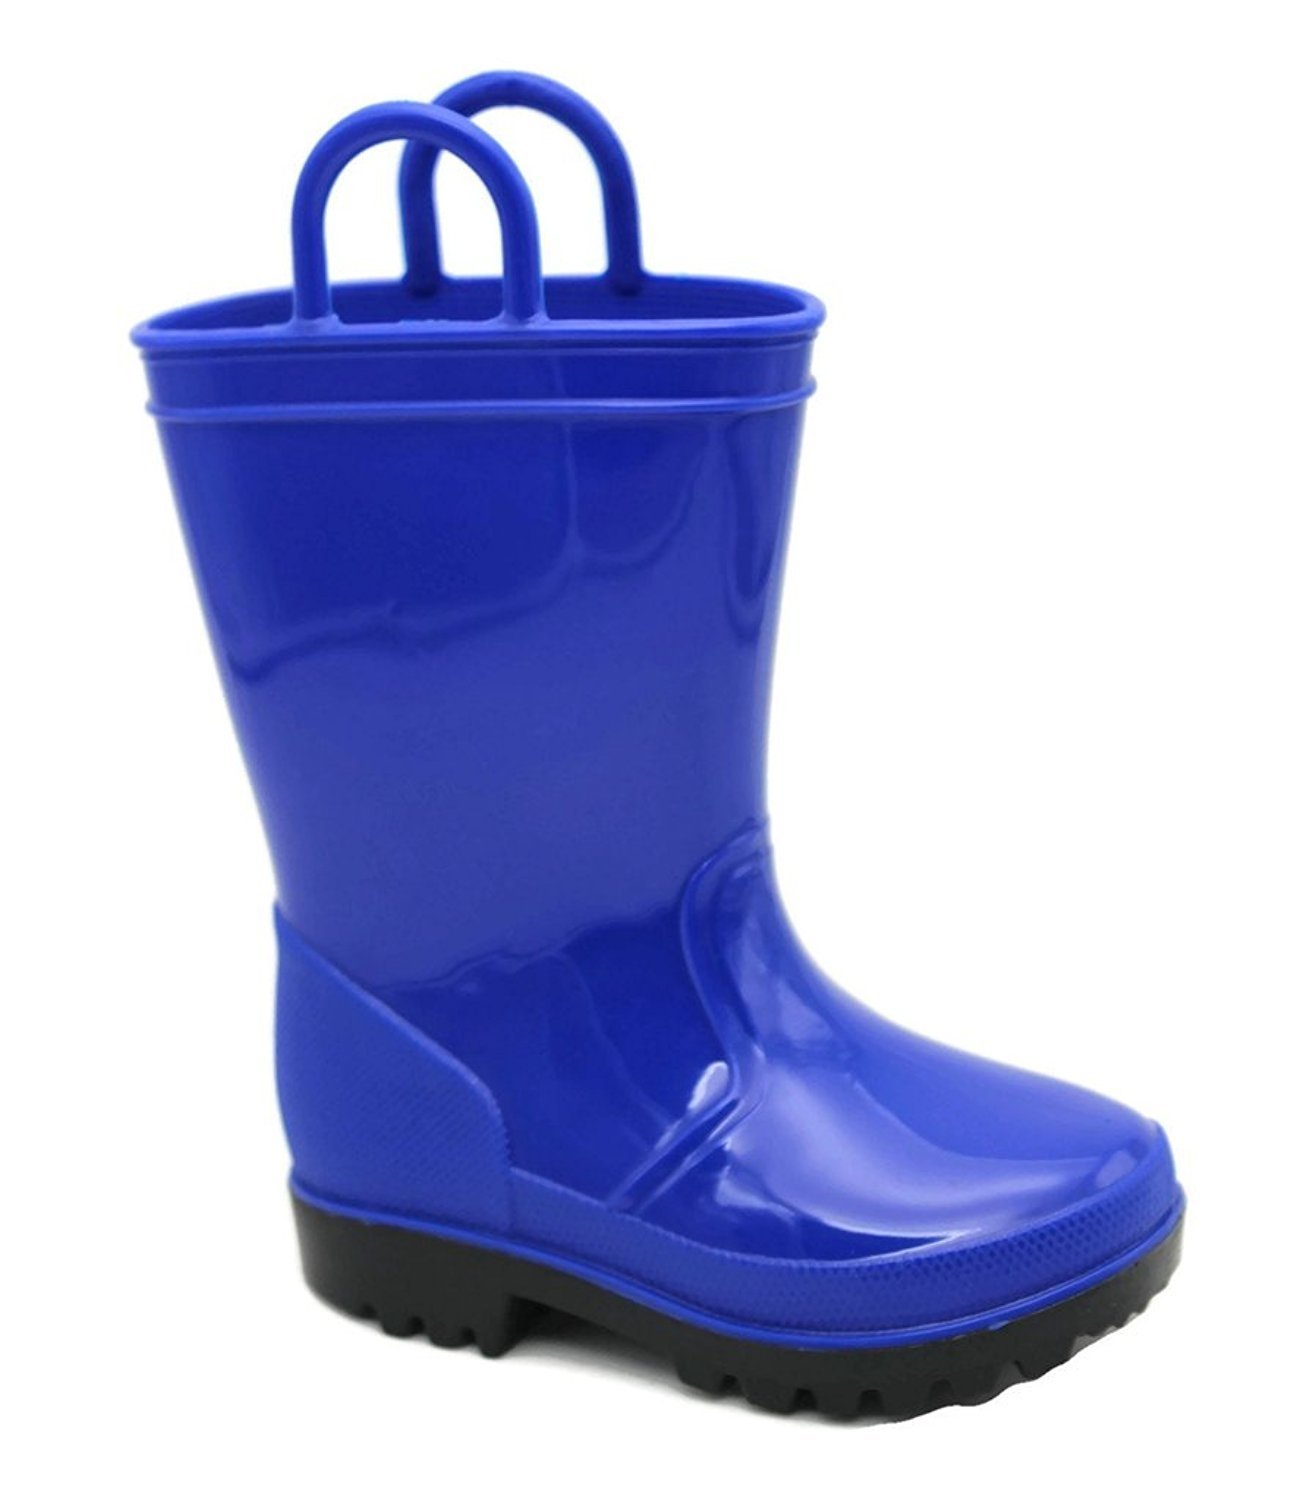 Product Description This rain boot from Kamik features sturdy tread and a classic look.